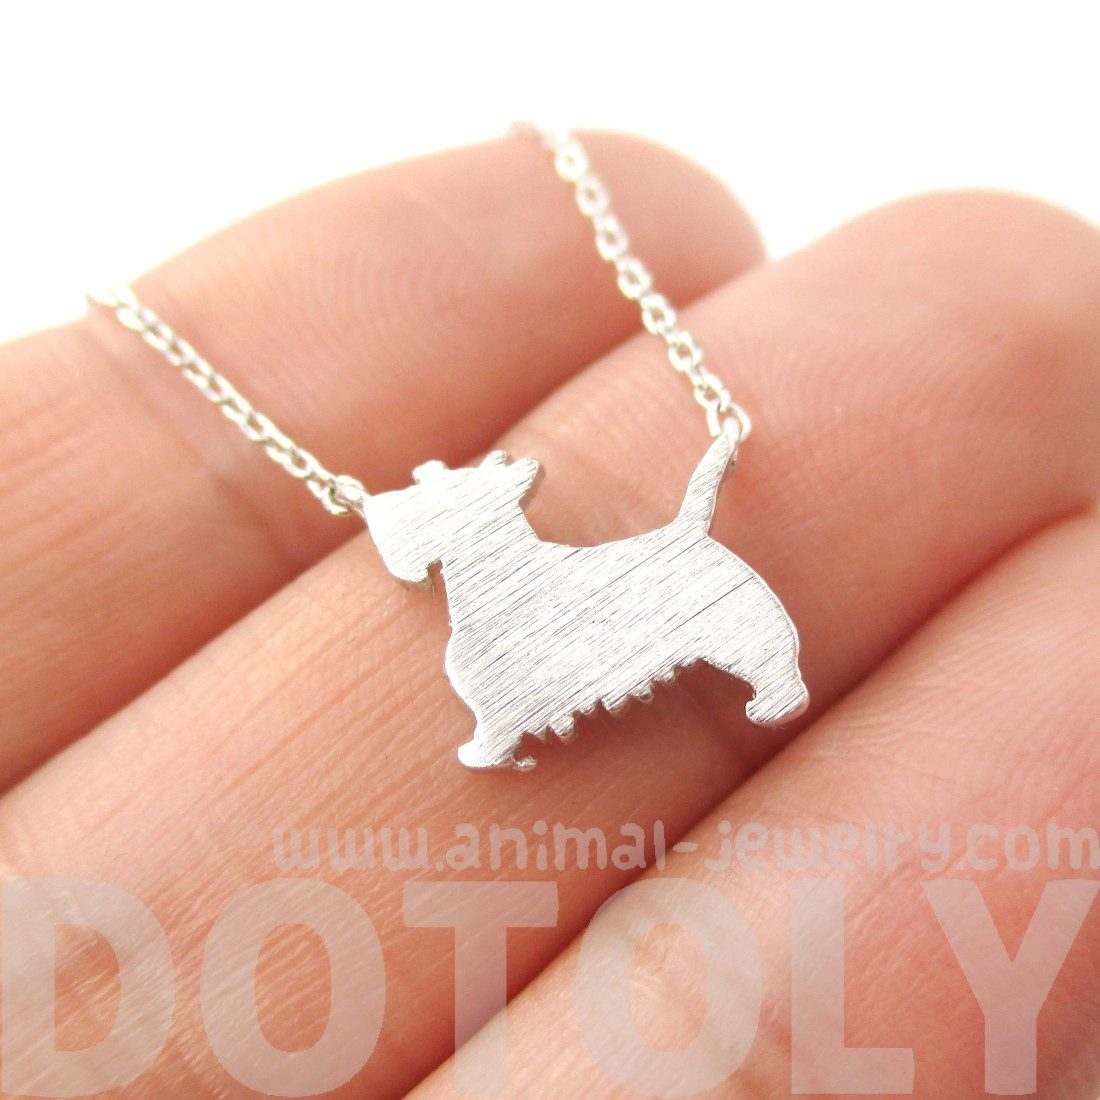 West Highland Terrier Dog Silhouette Necklace in Silver